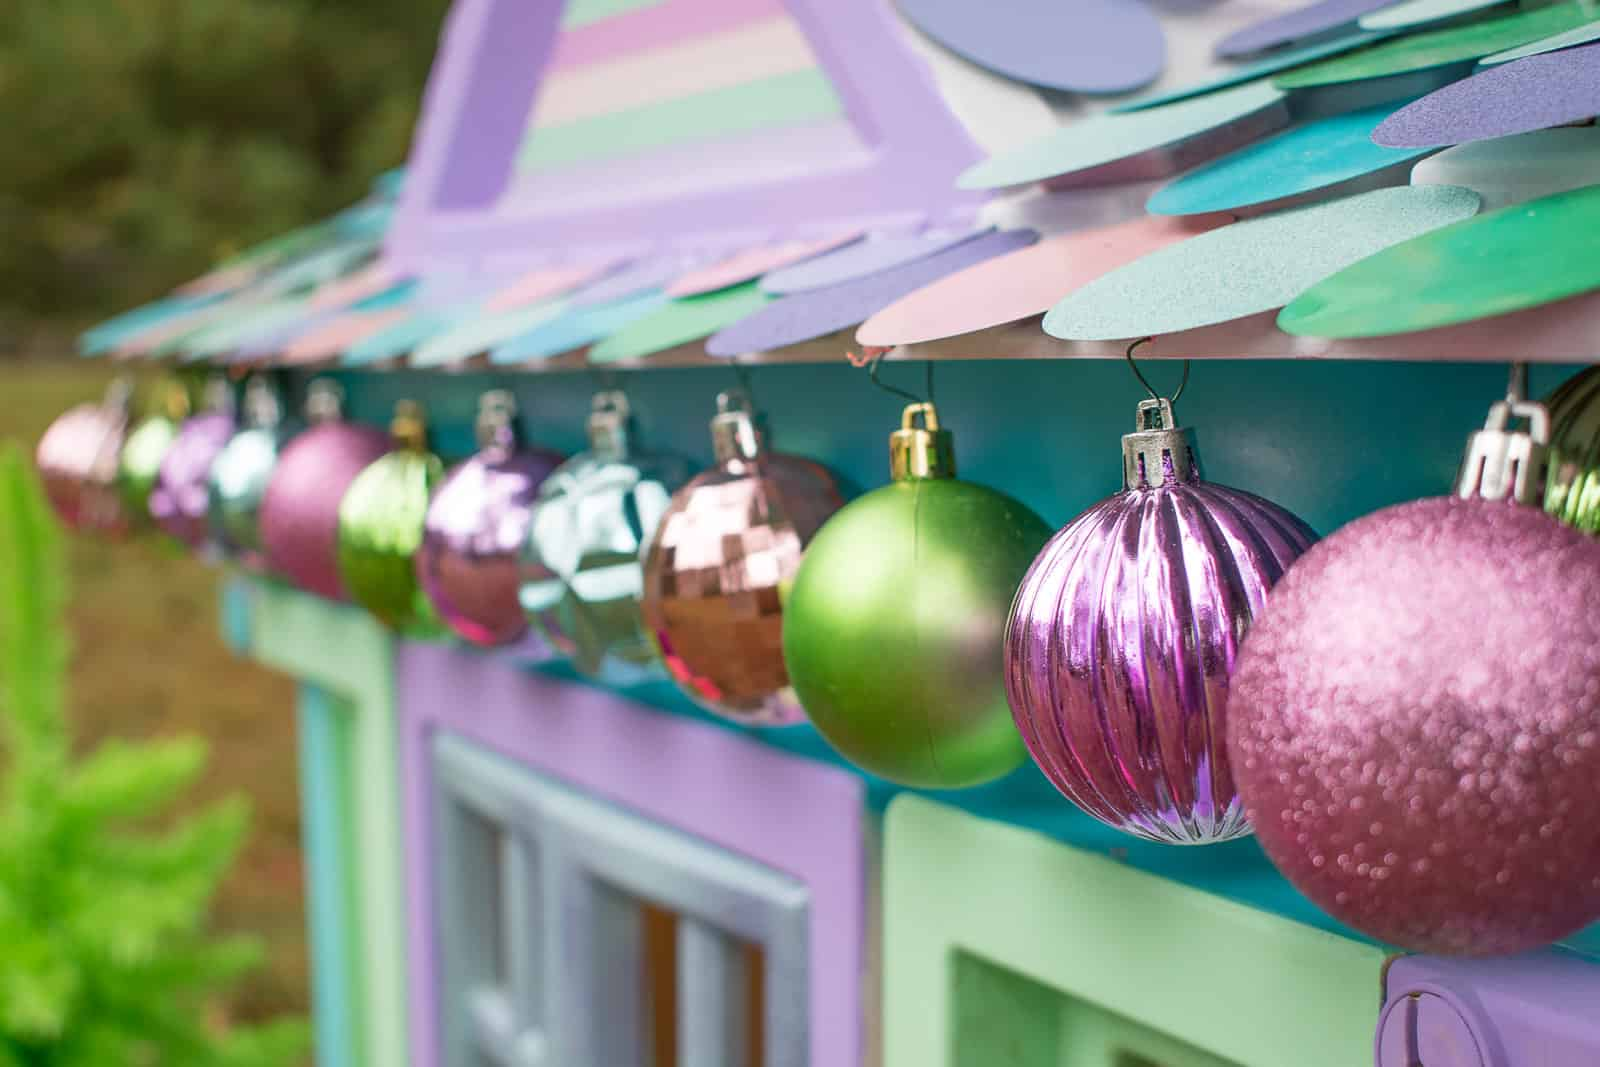 ornaments hanging from plastic house